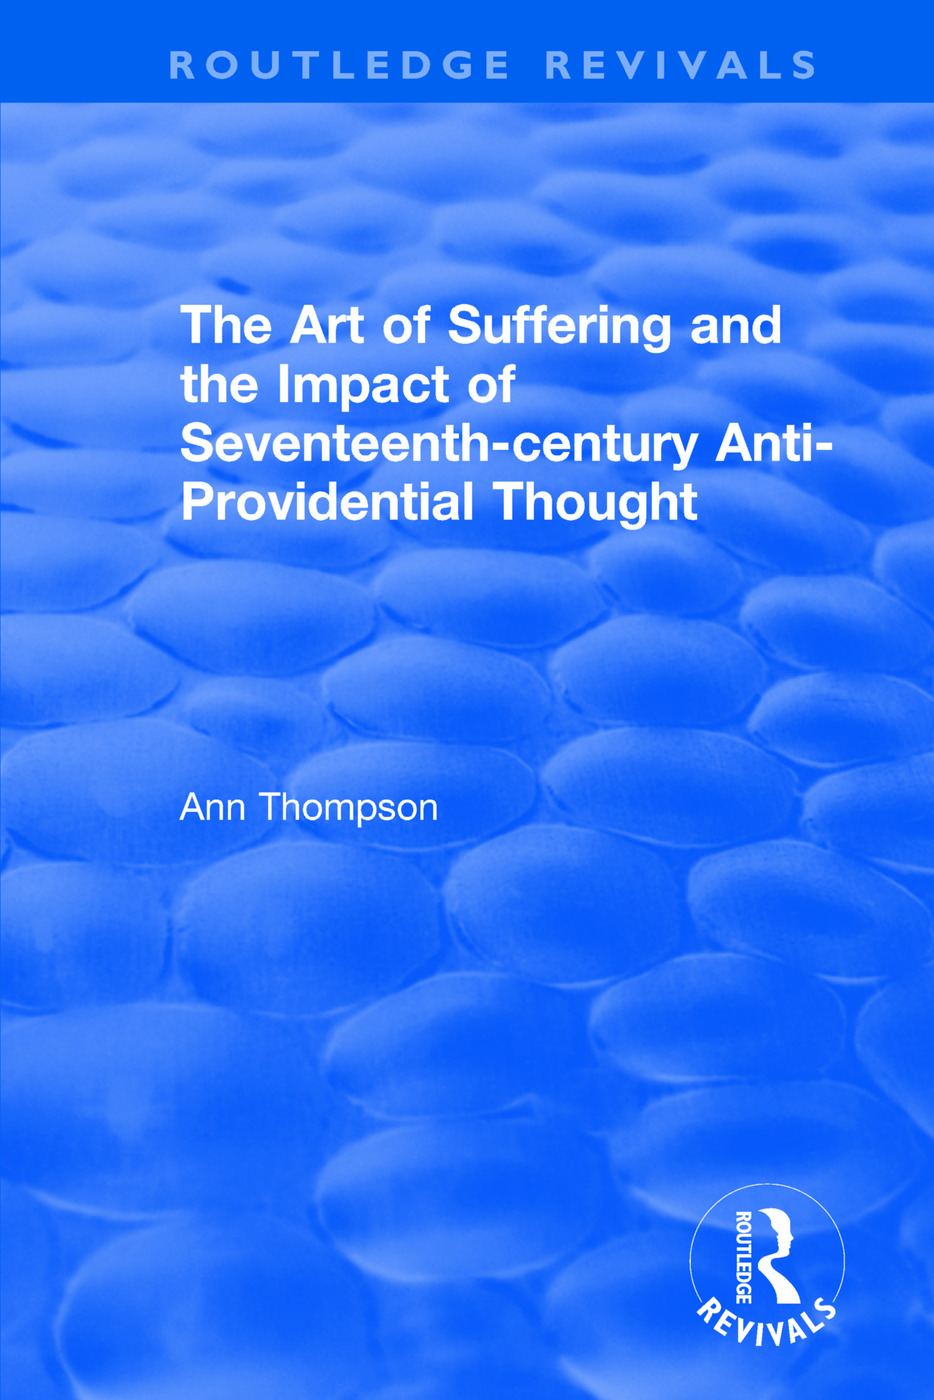 The Art of Suffering and the Impact of Seventeenth-century Anti-Providential Thought book cover